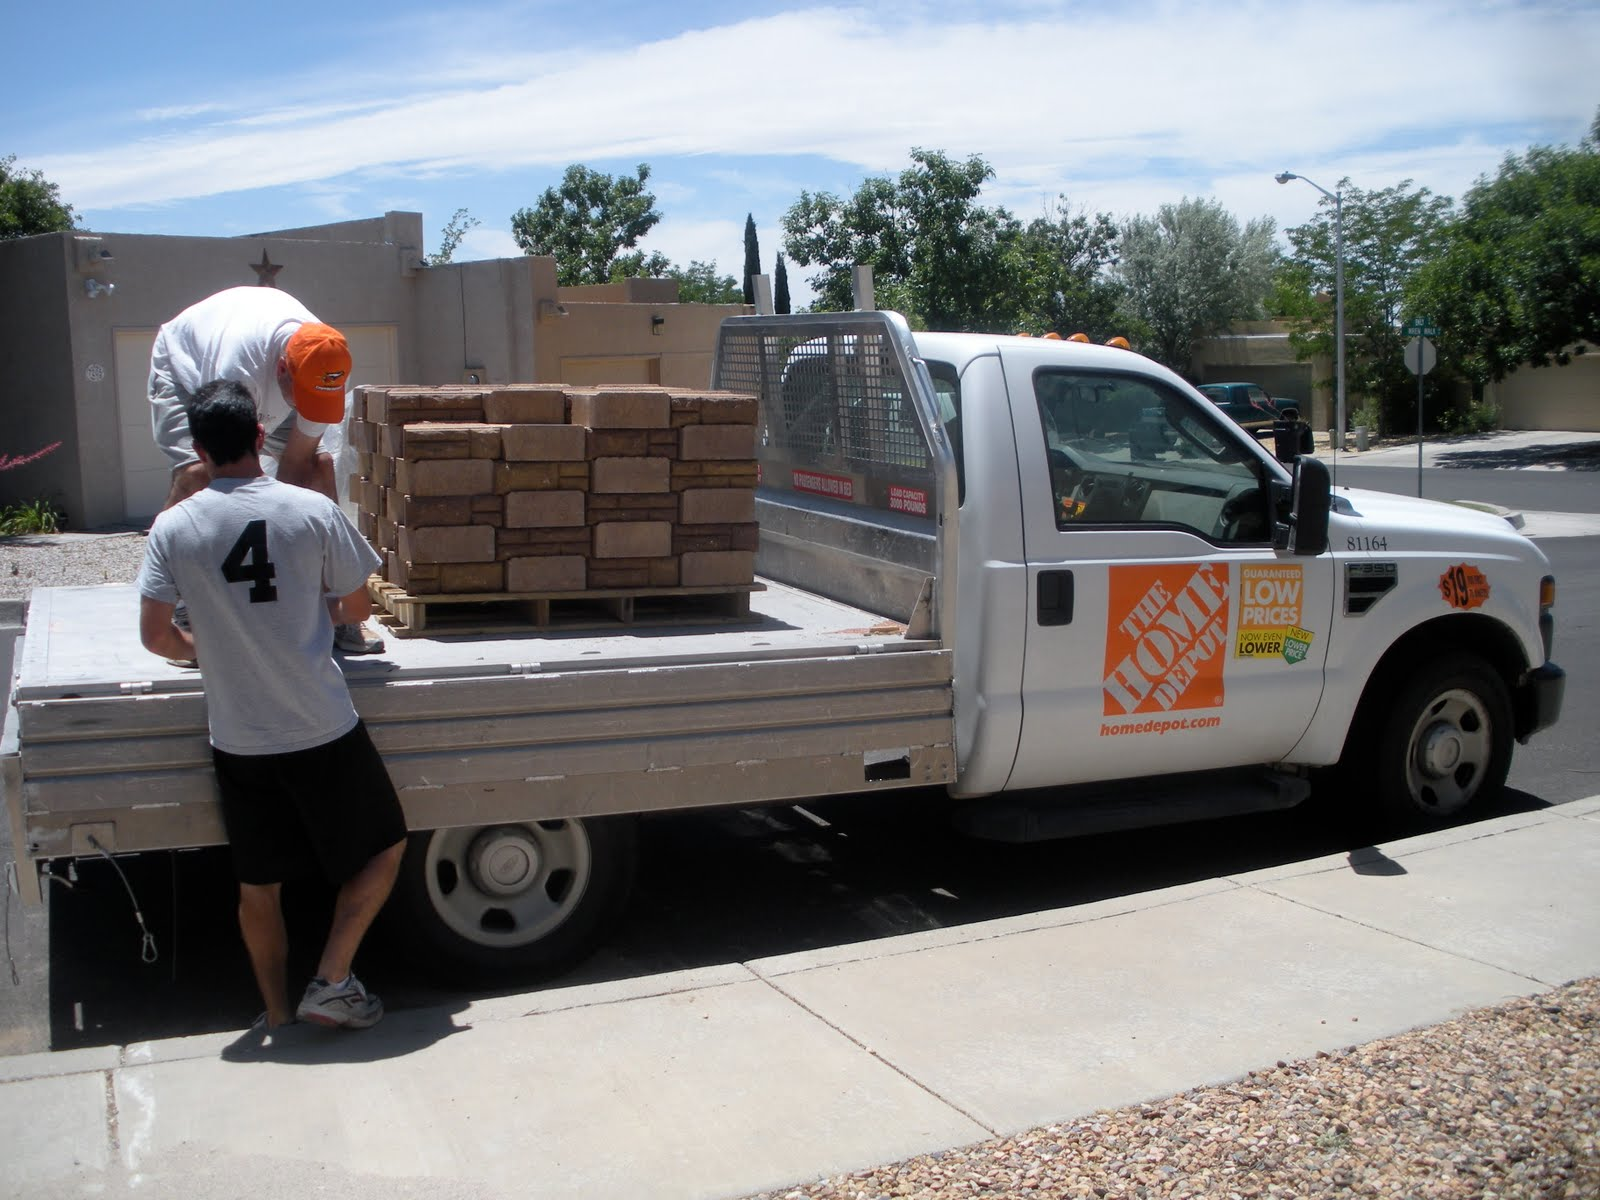 Truck rental home depot price